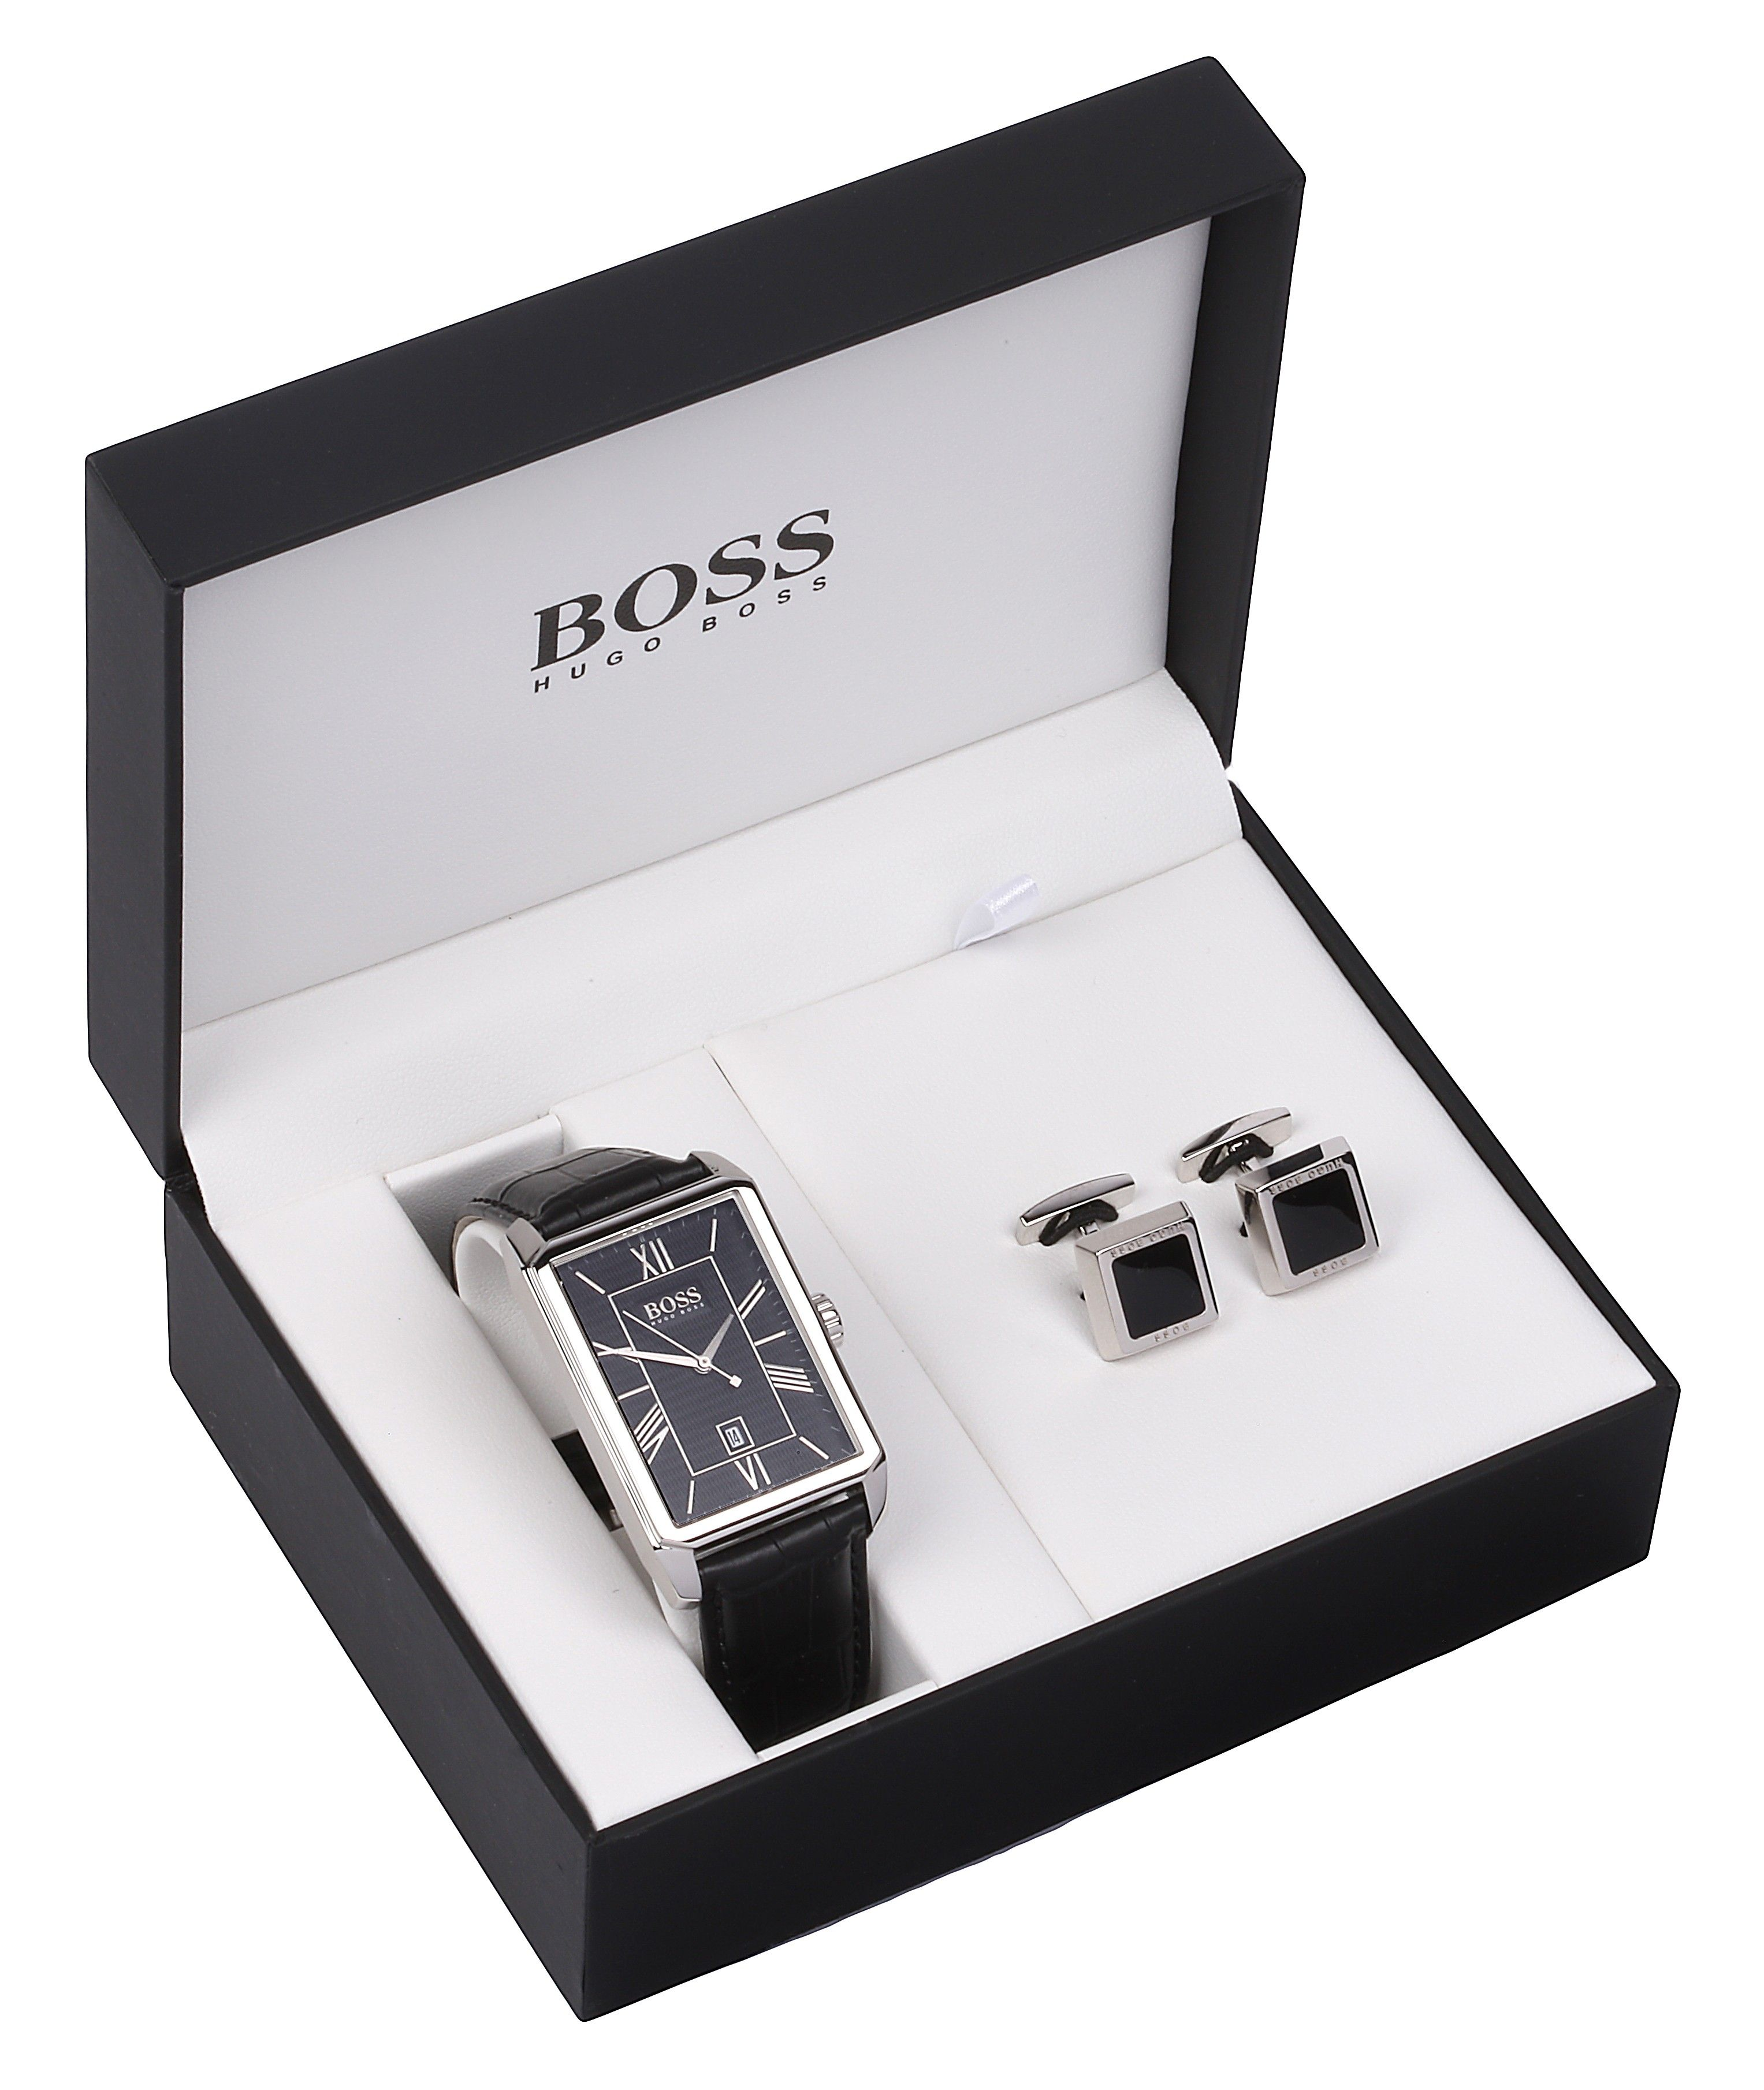 hugo boss men s leather strap watch and cufflink set fraser hart hugo boss men s leather strap watch and cufflink set fraser hart jewellers